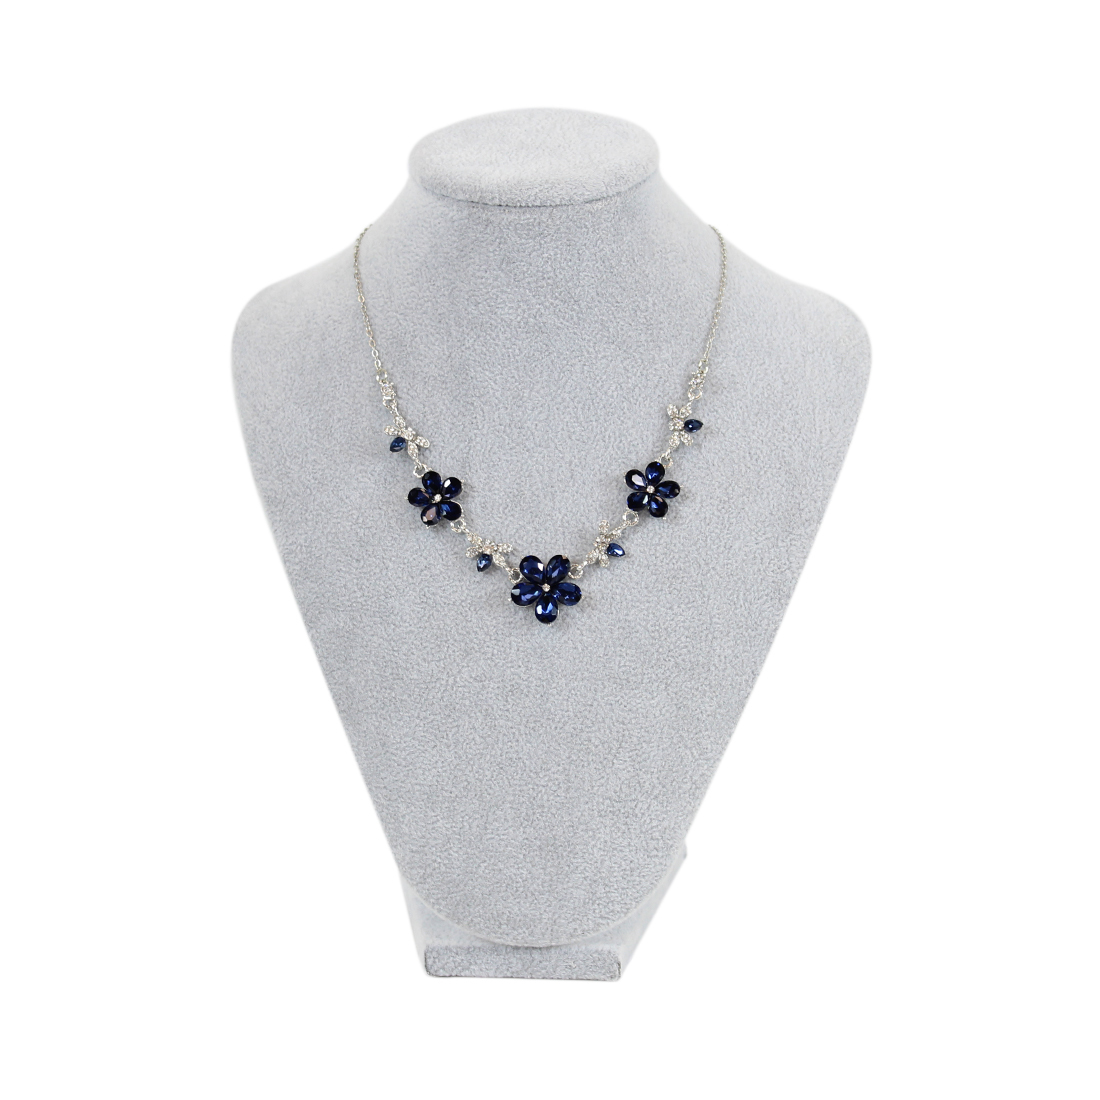 Beautiful crystal flowers necklace with tiny diamonds